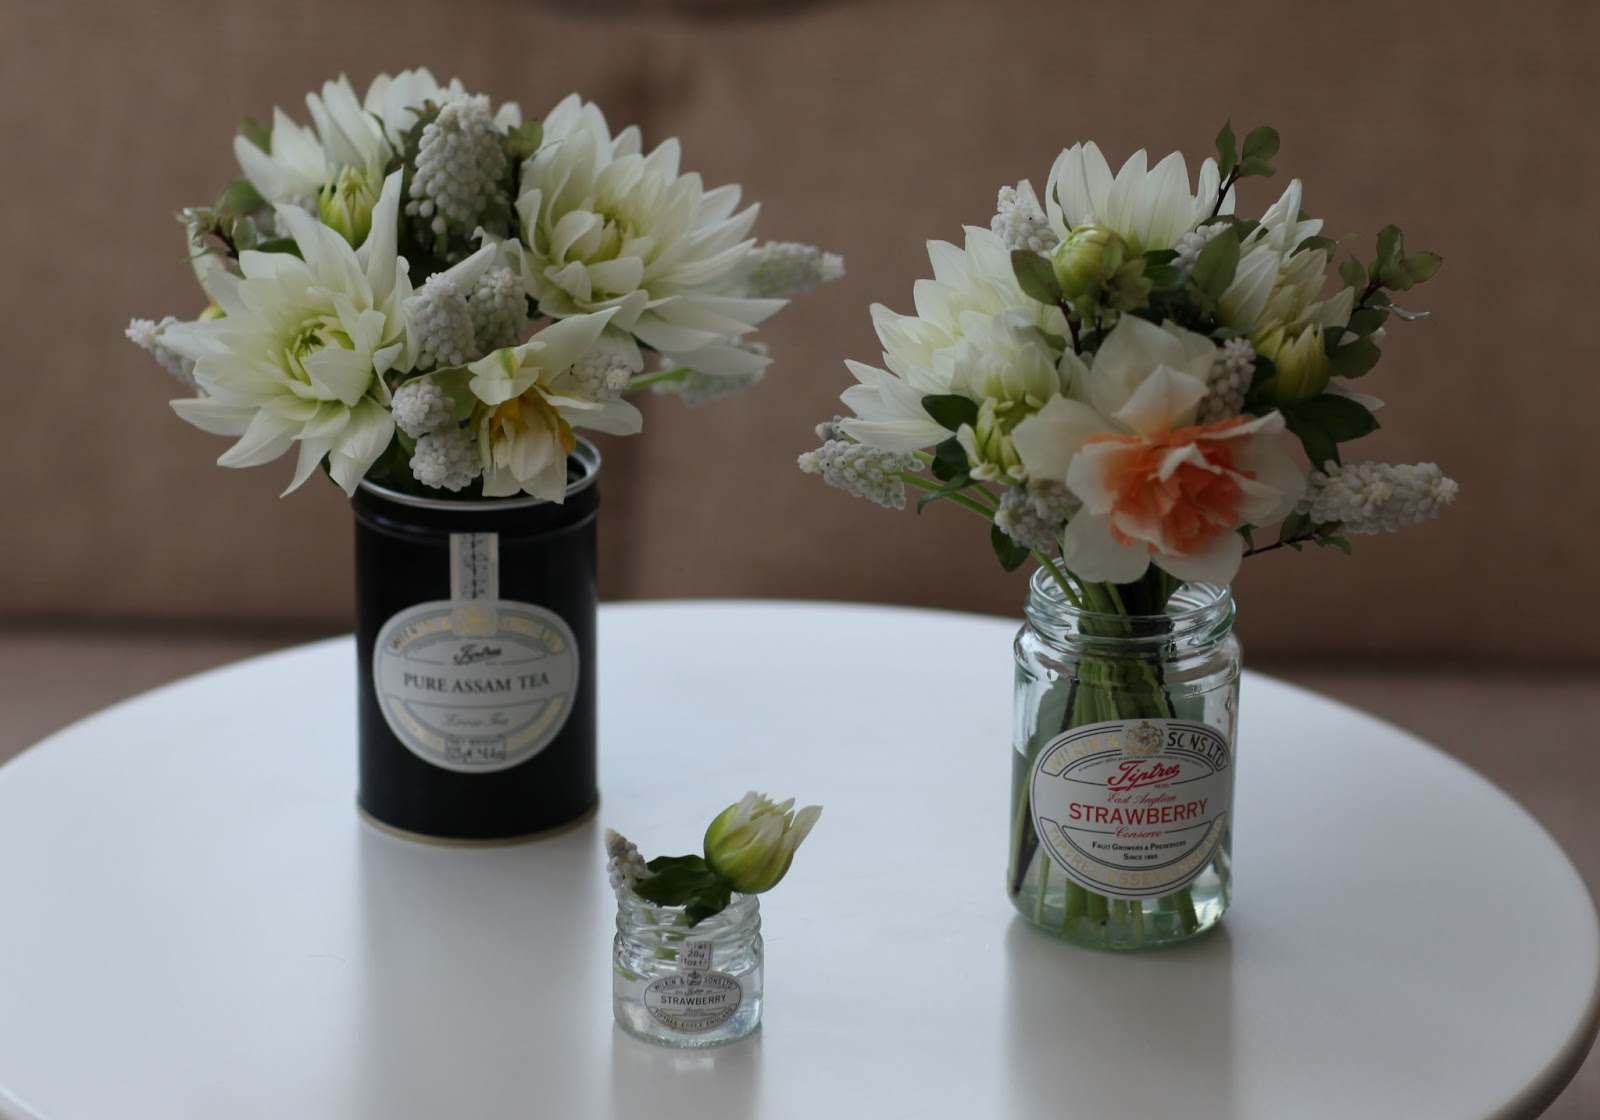 Flowers by shamini dignity and new beginnings i love making pretty and textured scented country kitchen style flowers in complementary containers i do like tiptree jars and caddies the labels izmirmasajfo